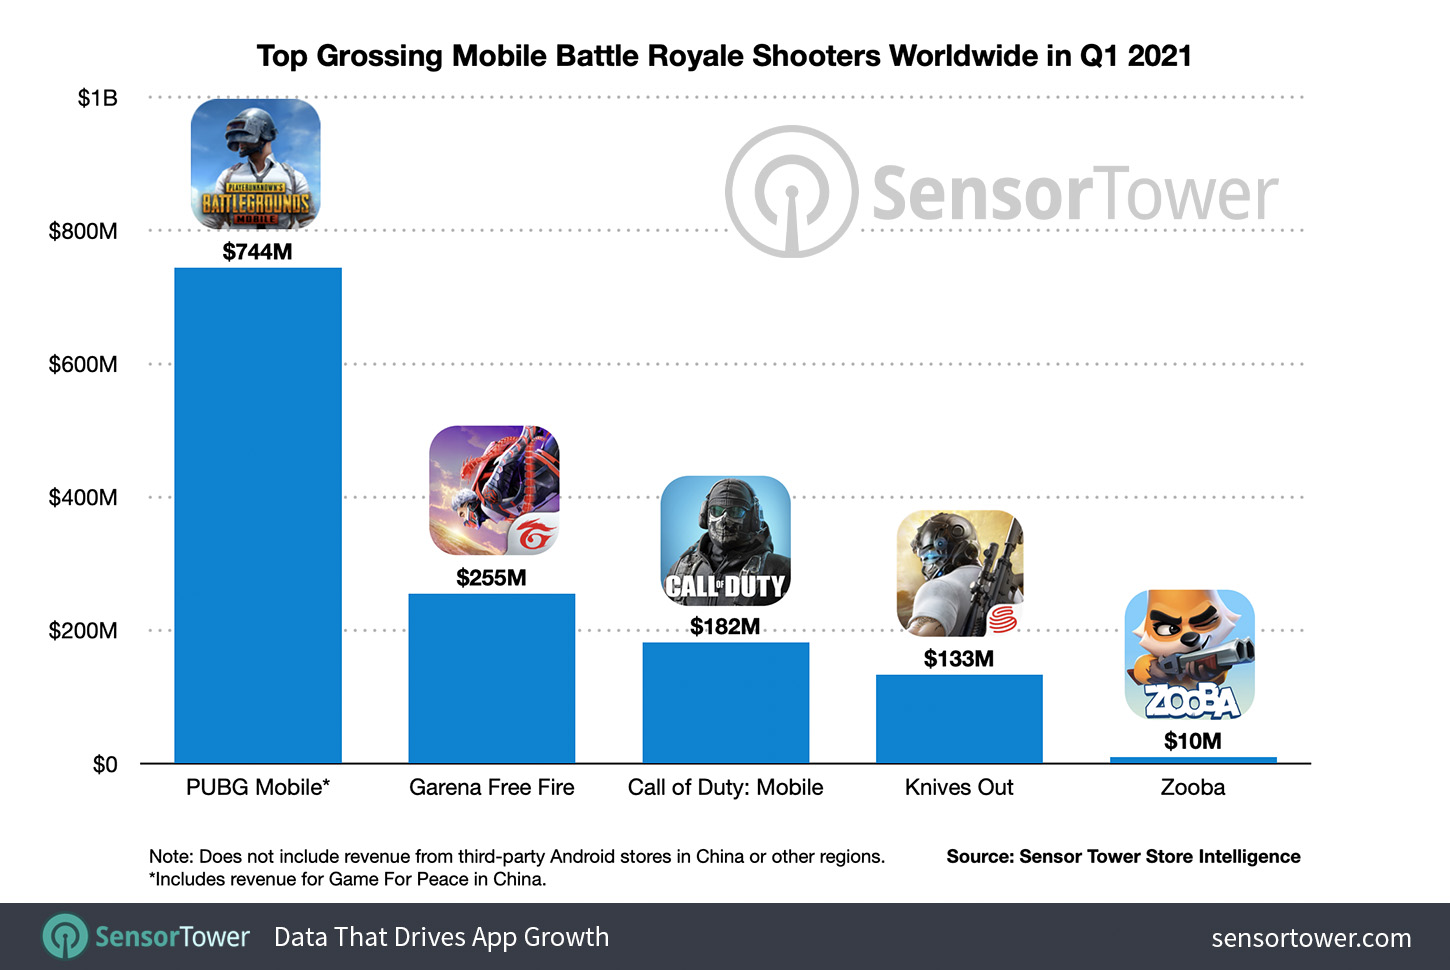 The Most Profitable Mobile Battle Royale Shooters Around The World In Q1 2021